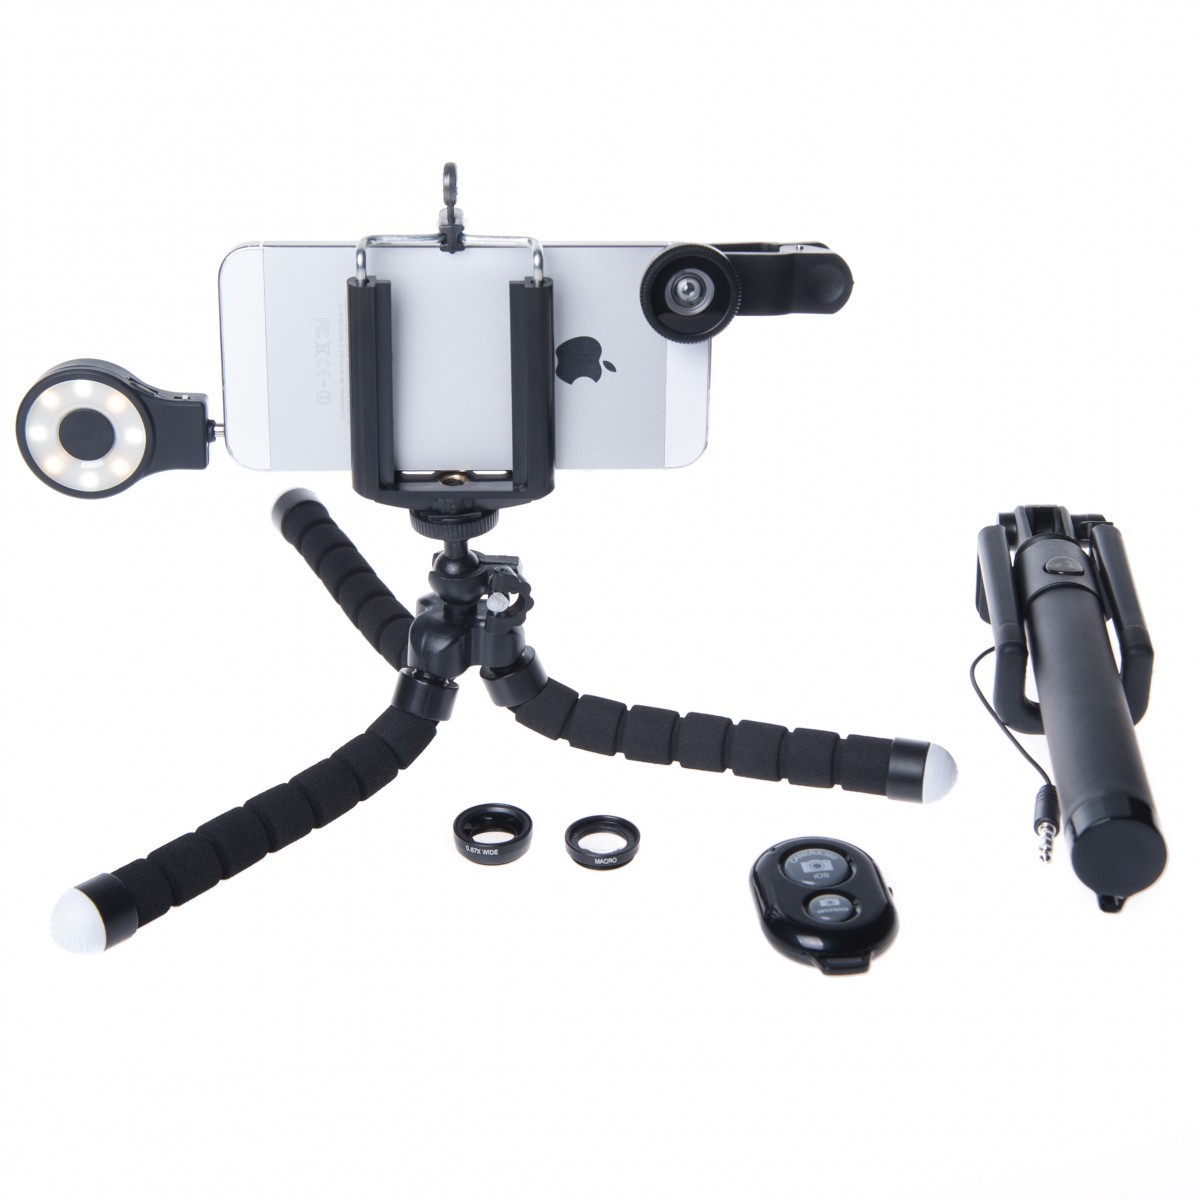 Photography Kit for Samsung Galaxy Note 4: Phone Lens, Tripod, Selfie,  stick, Remote, Flash